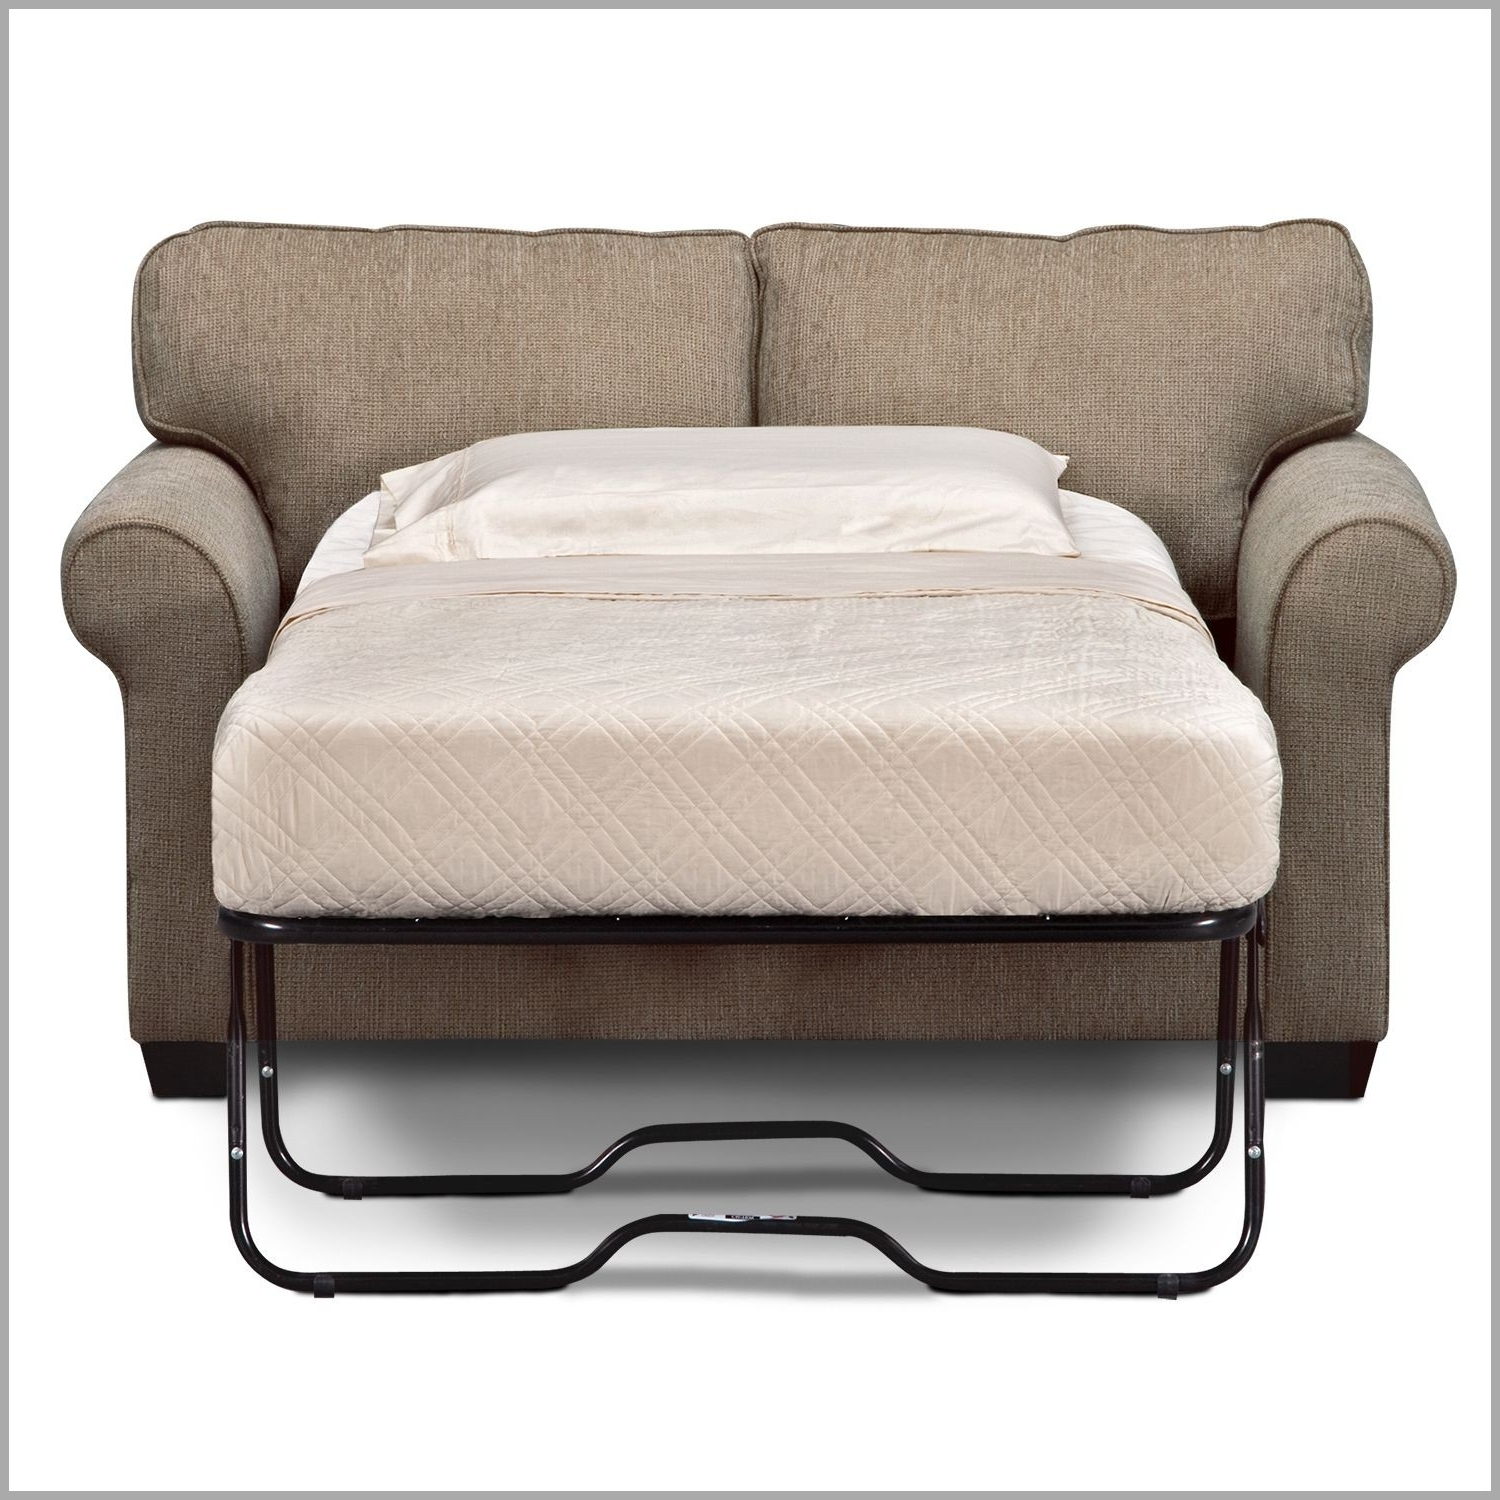 Pull Out Sofa Chairs Throughout Preferred Twin Size Sleeper Sofa Chairs New Surprising Decorative  (View 10 of 15)